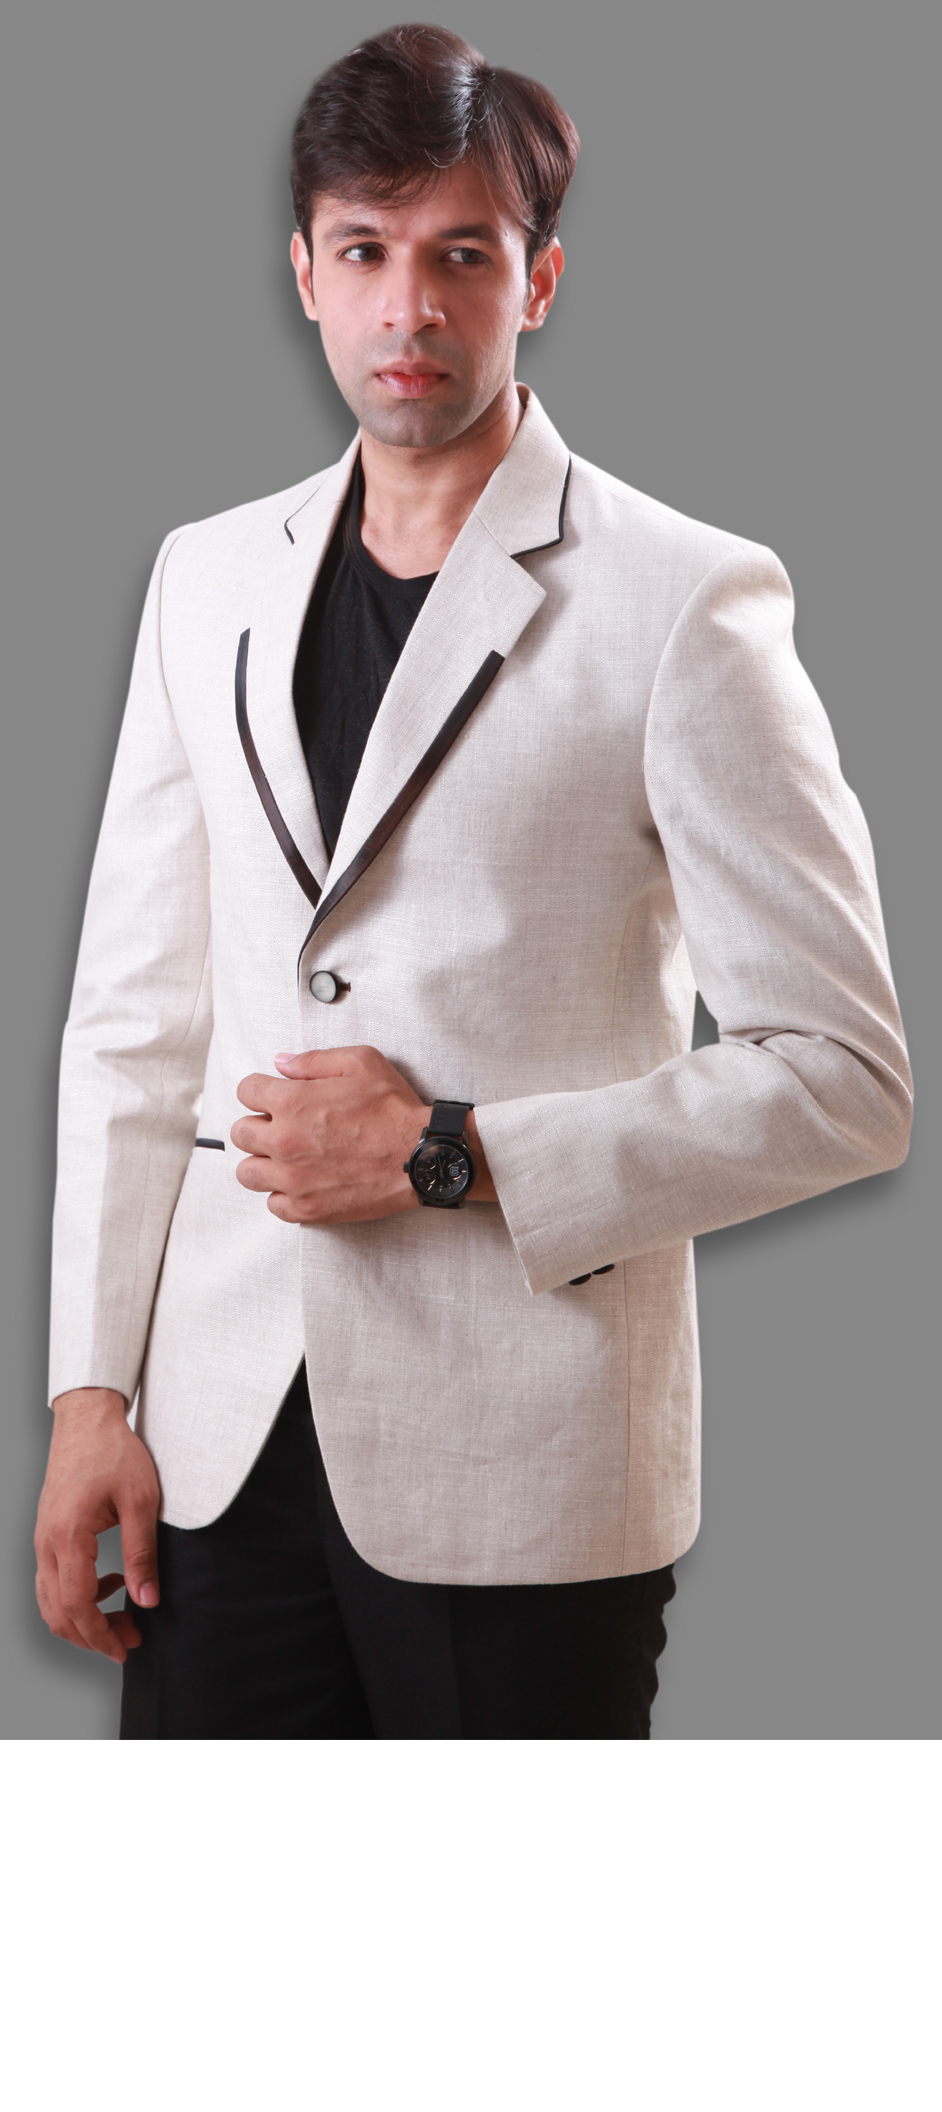 502651 White And Off White Color Cotton Linen Fabric Blazer